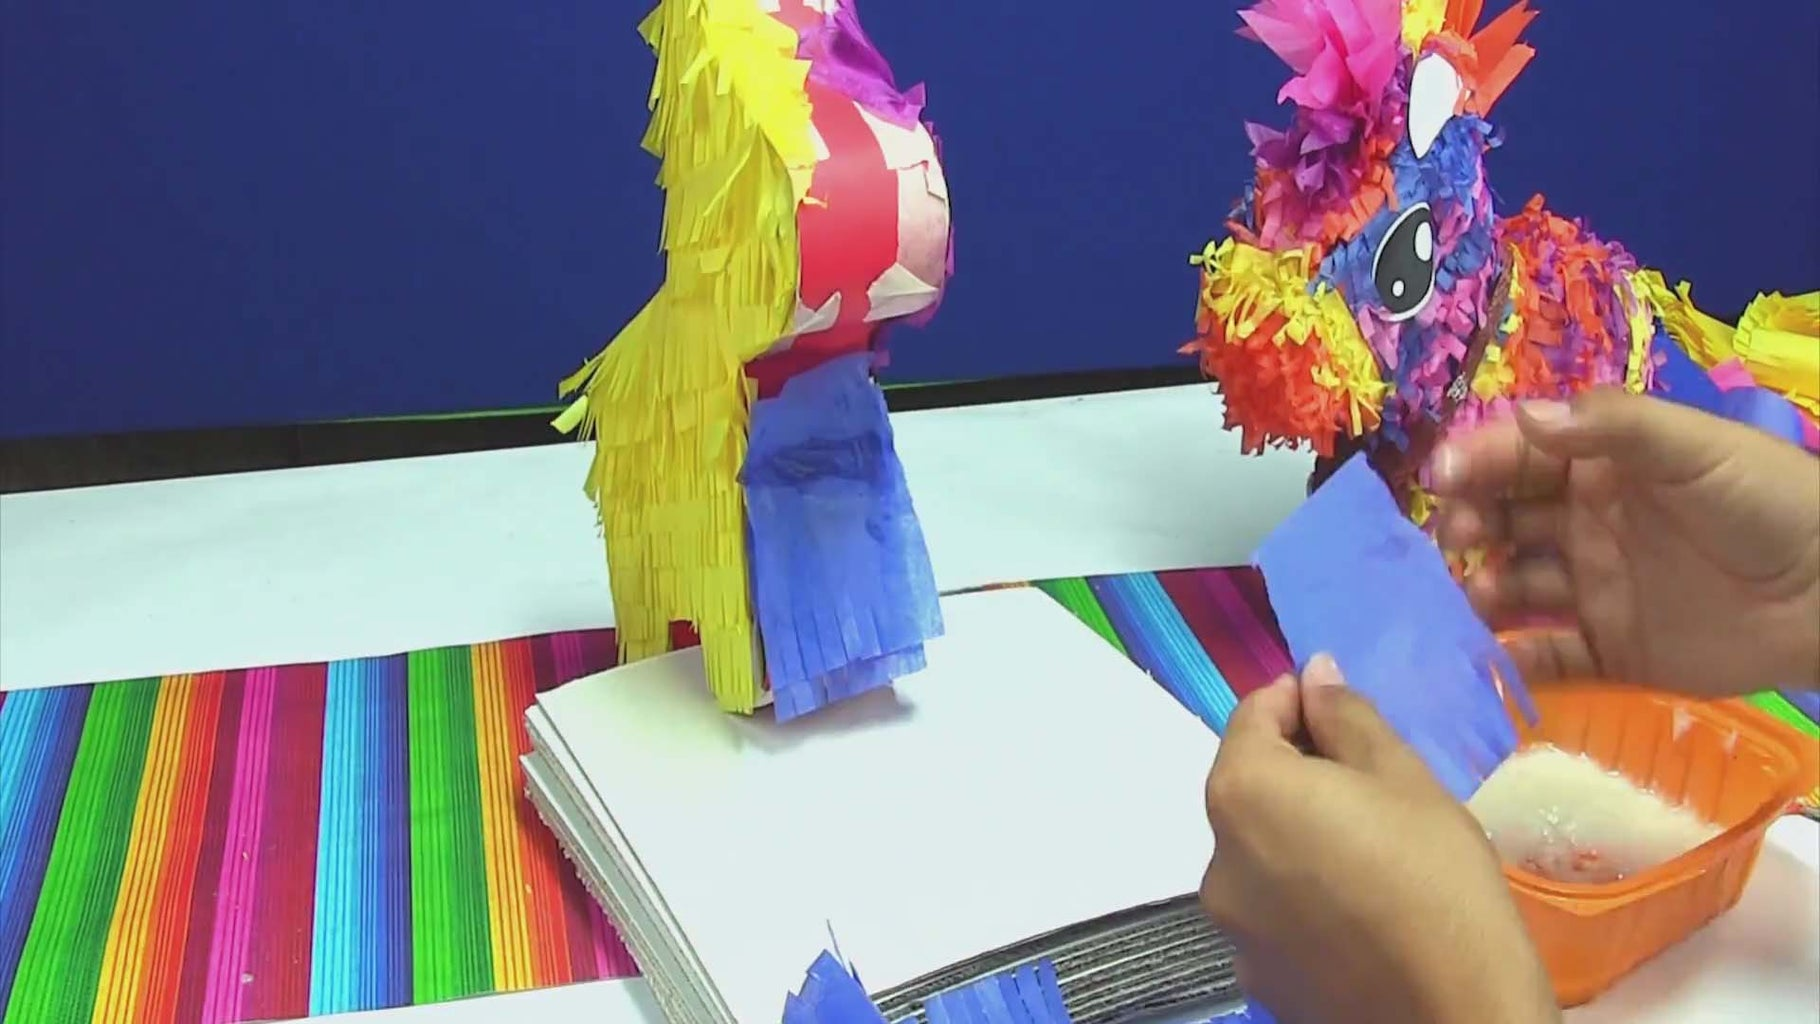 Apply Fringe to the Sides of Your Pinata